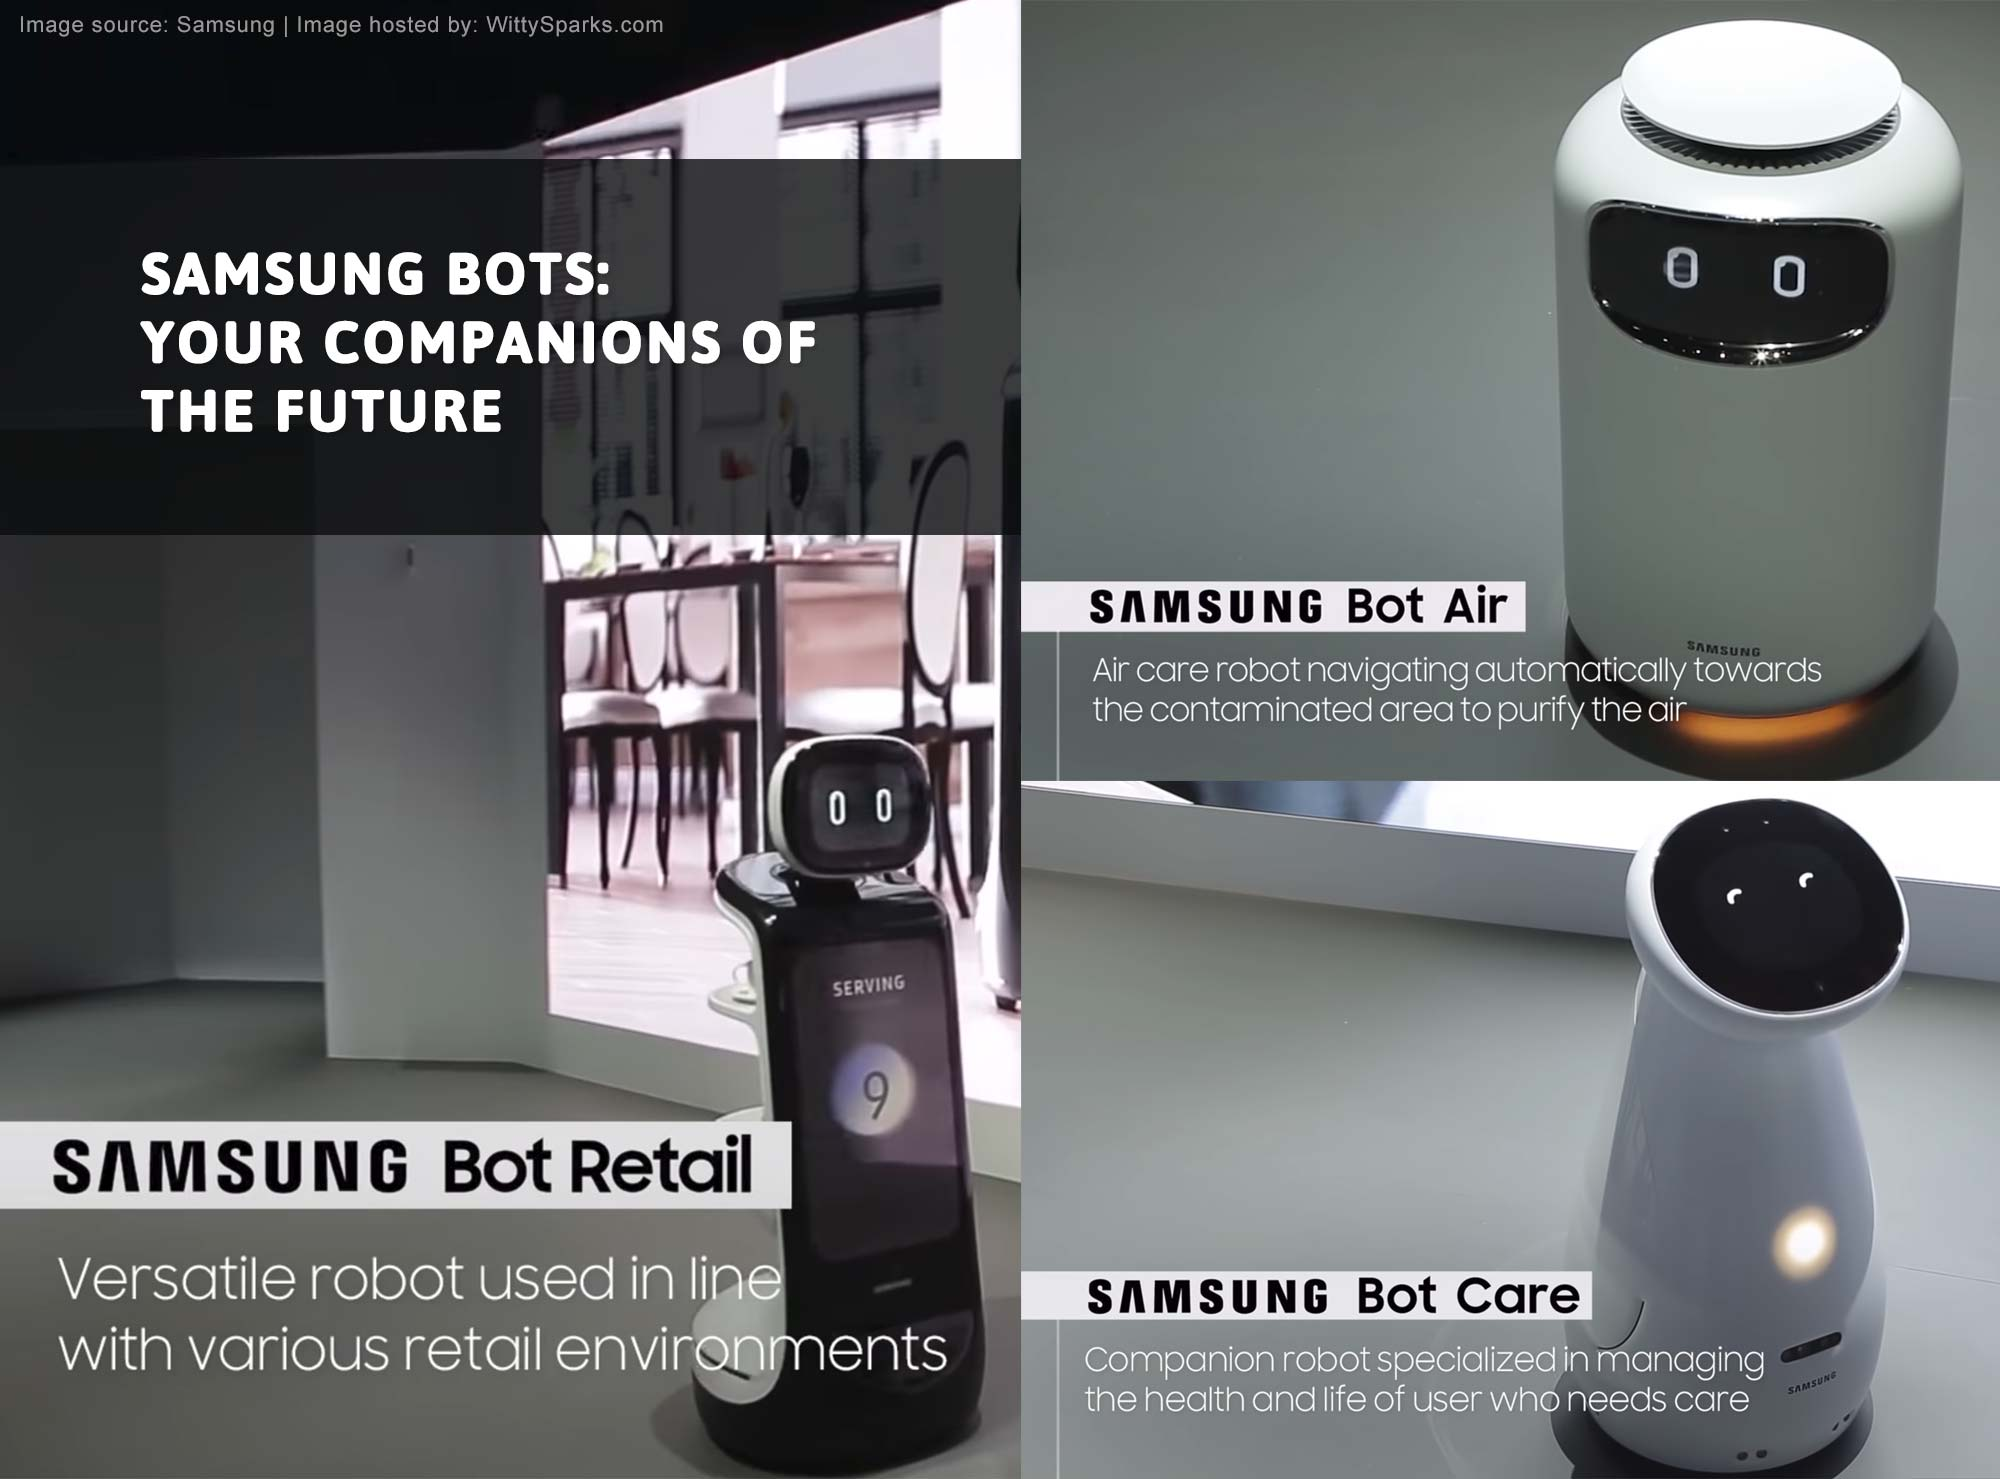 Samsung Bots - Retail, Air, Care